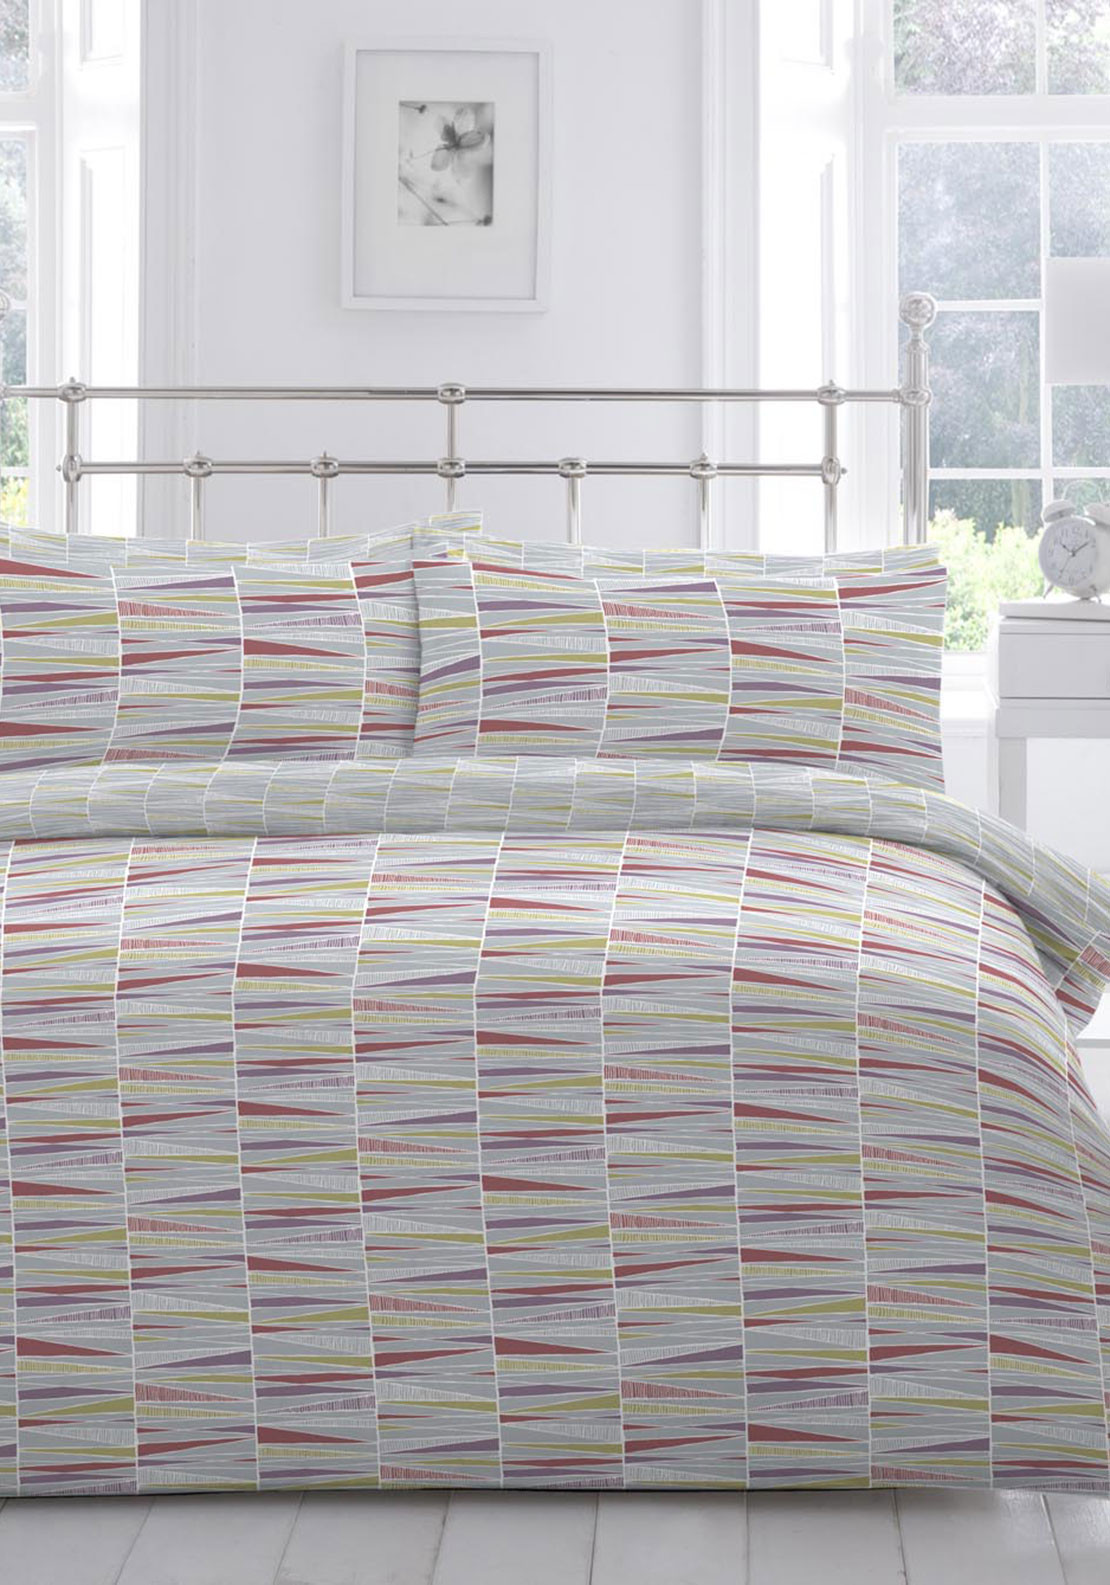 Nineteen11 Moriko Duvet Cover Set, Multi-Coloured